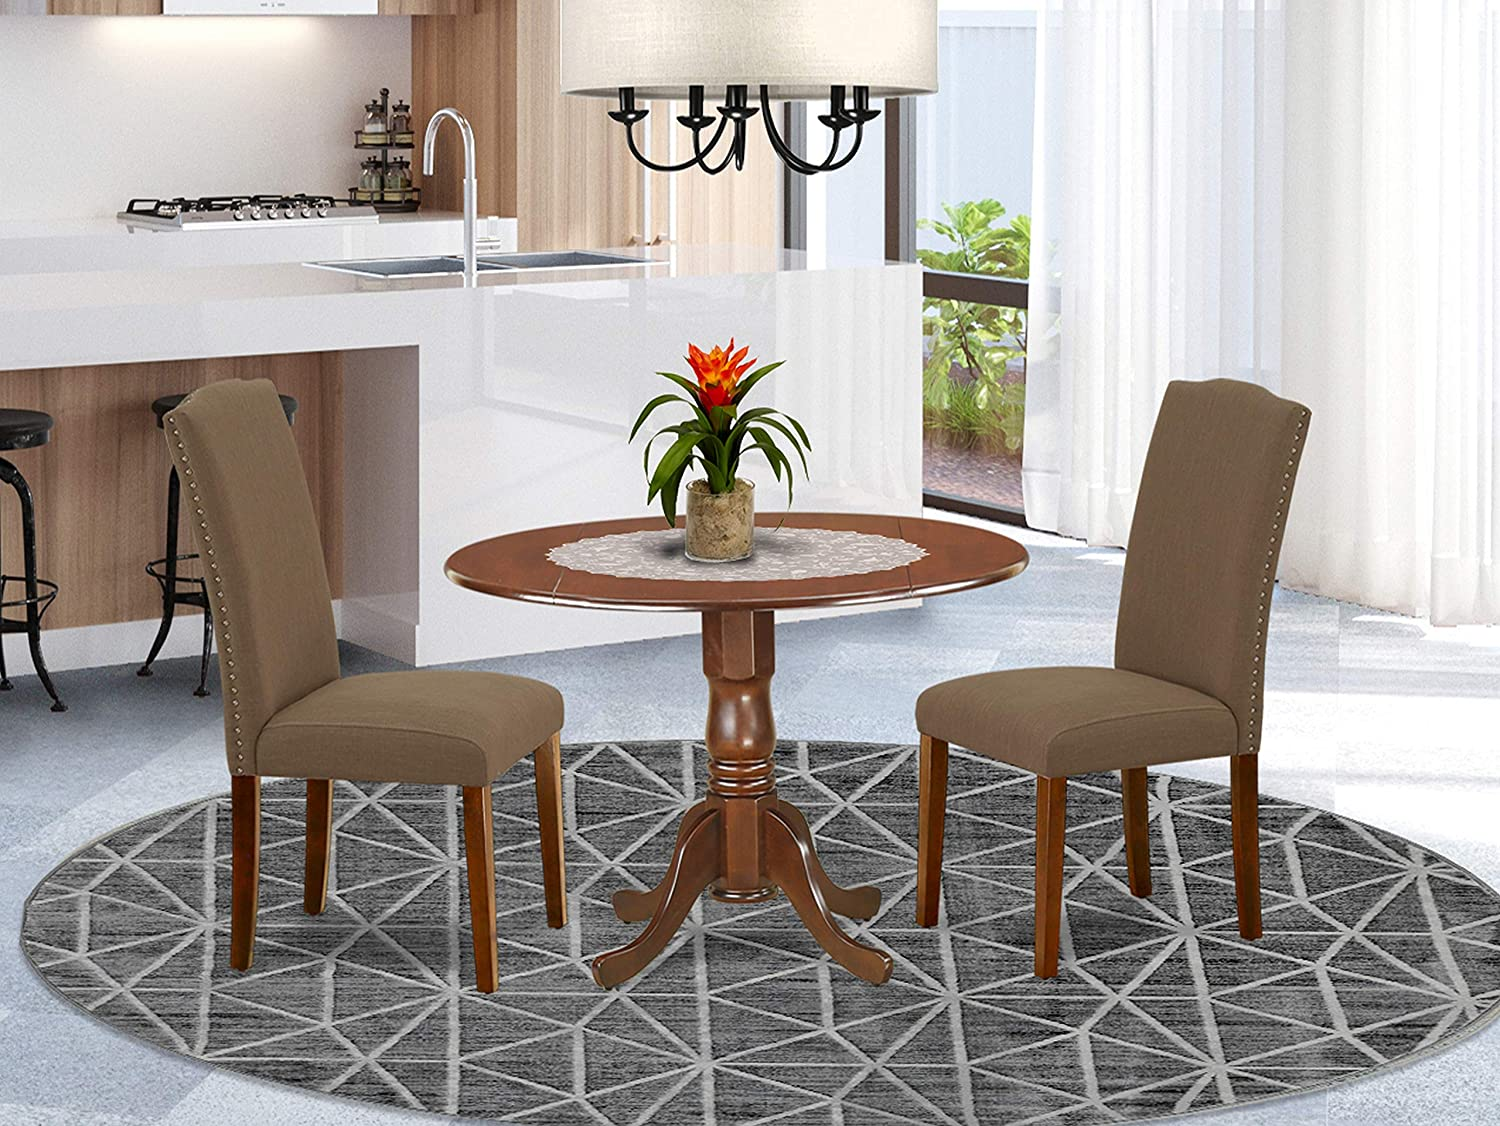 East West Furniture 9Pc Round 9 Inch Kitchen Table With Two 9 Inch Drop  Leaves And A Pair Of Parson Chair With Mahogany Leg And Linen Fabric Dark  ...